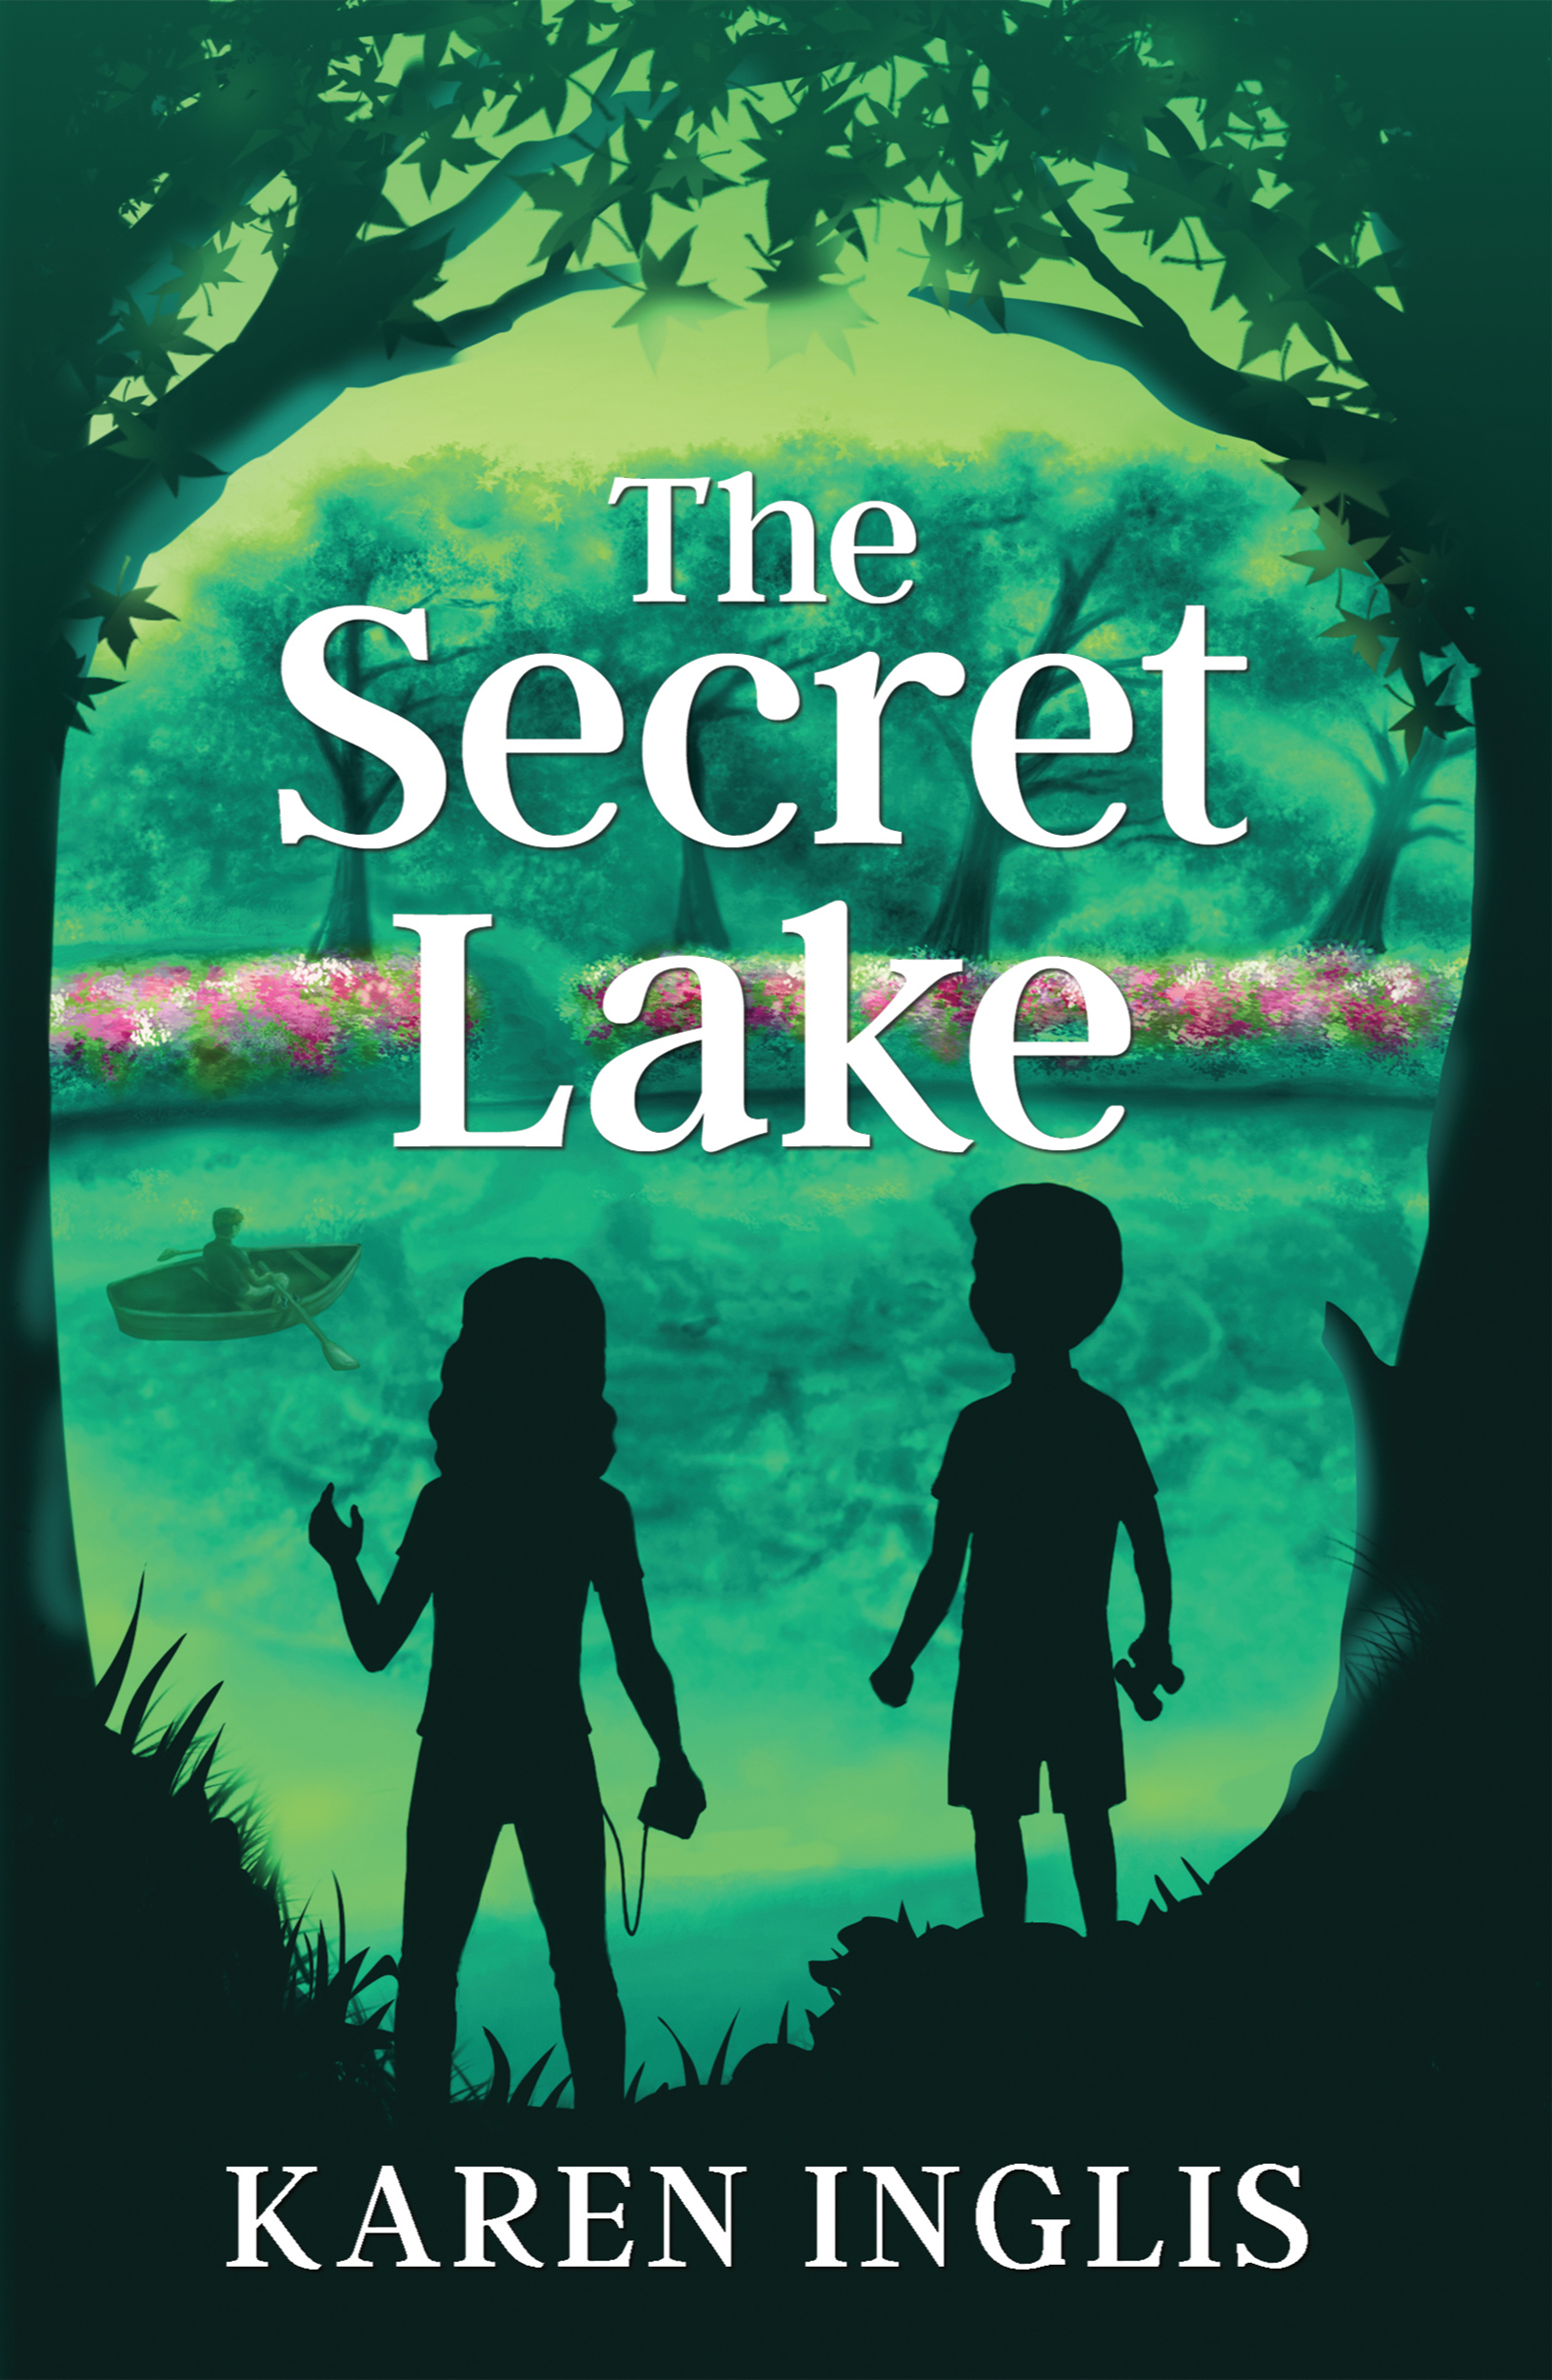 Self-publishing Success Stories: Karen Inglis & The Secret Lake